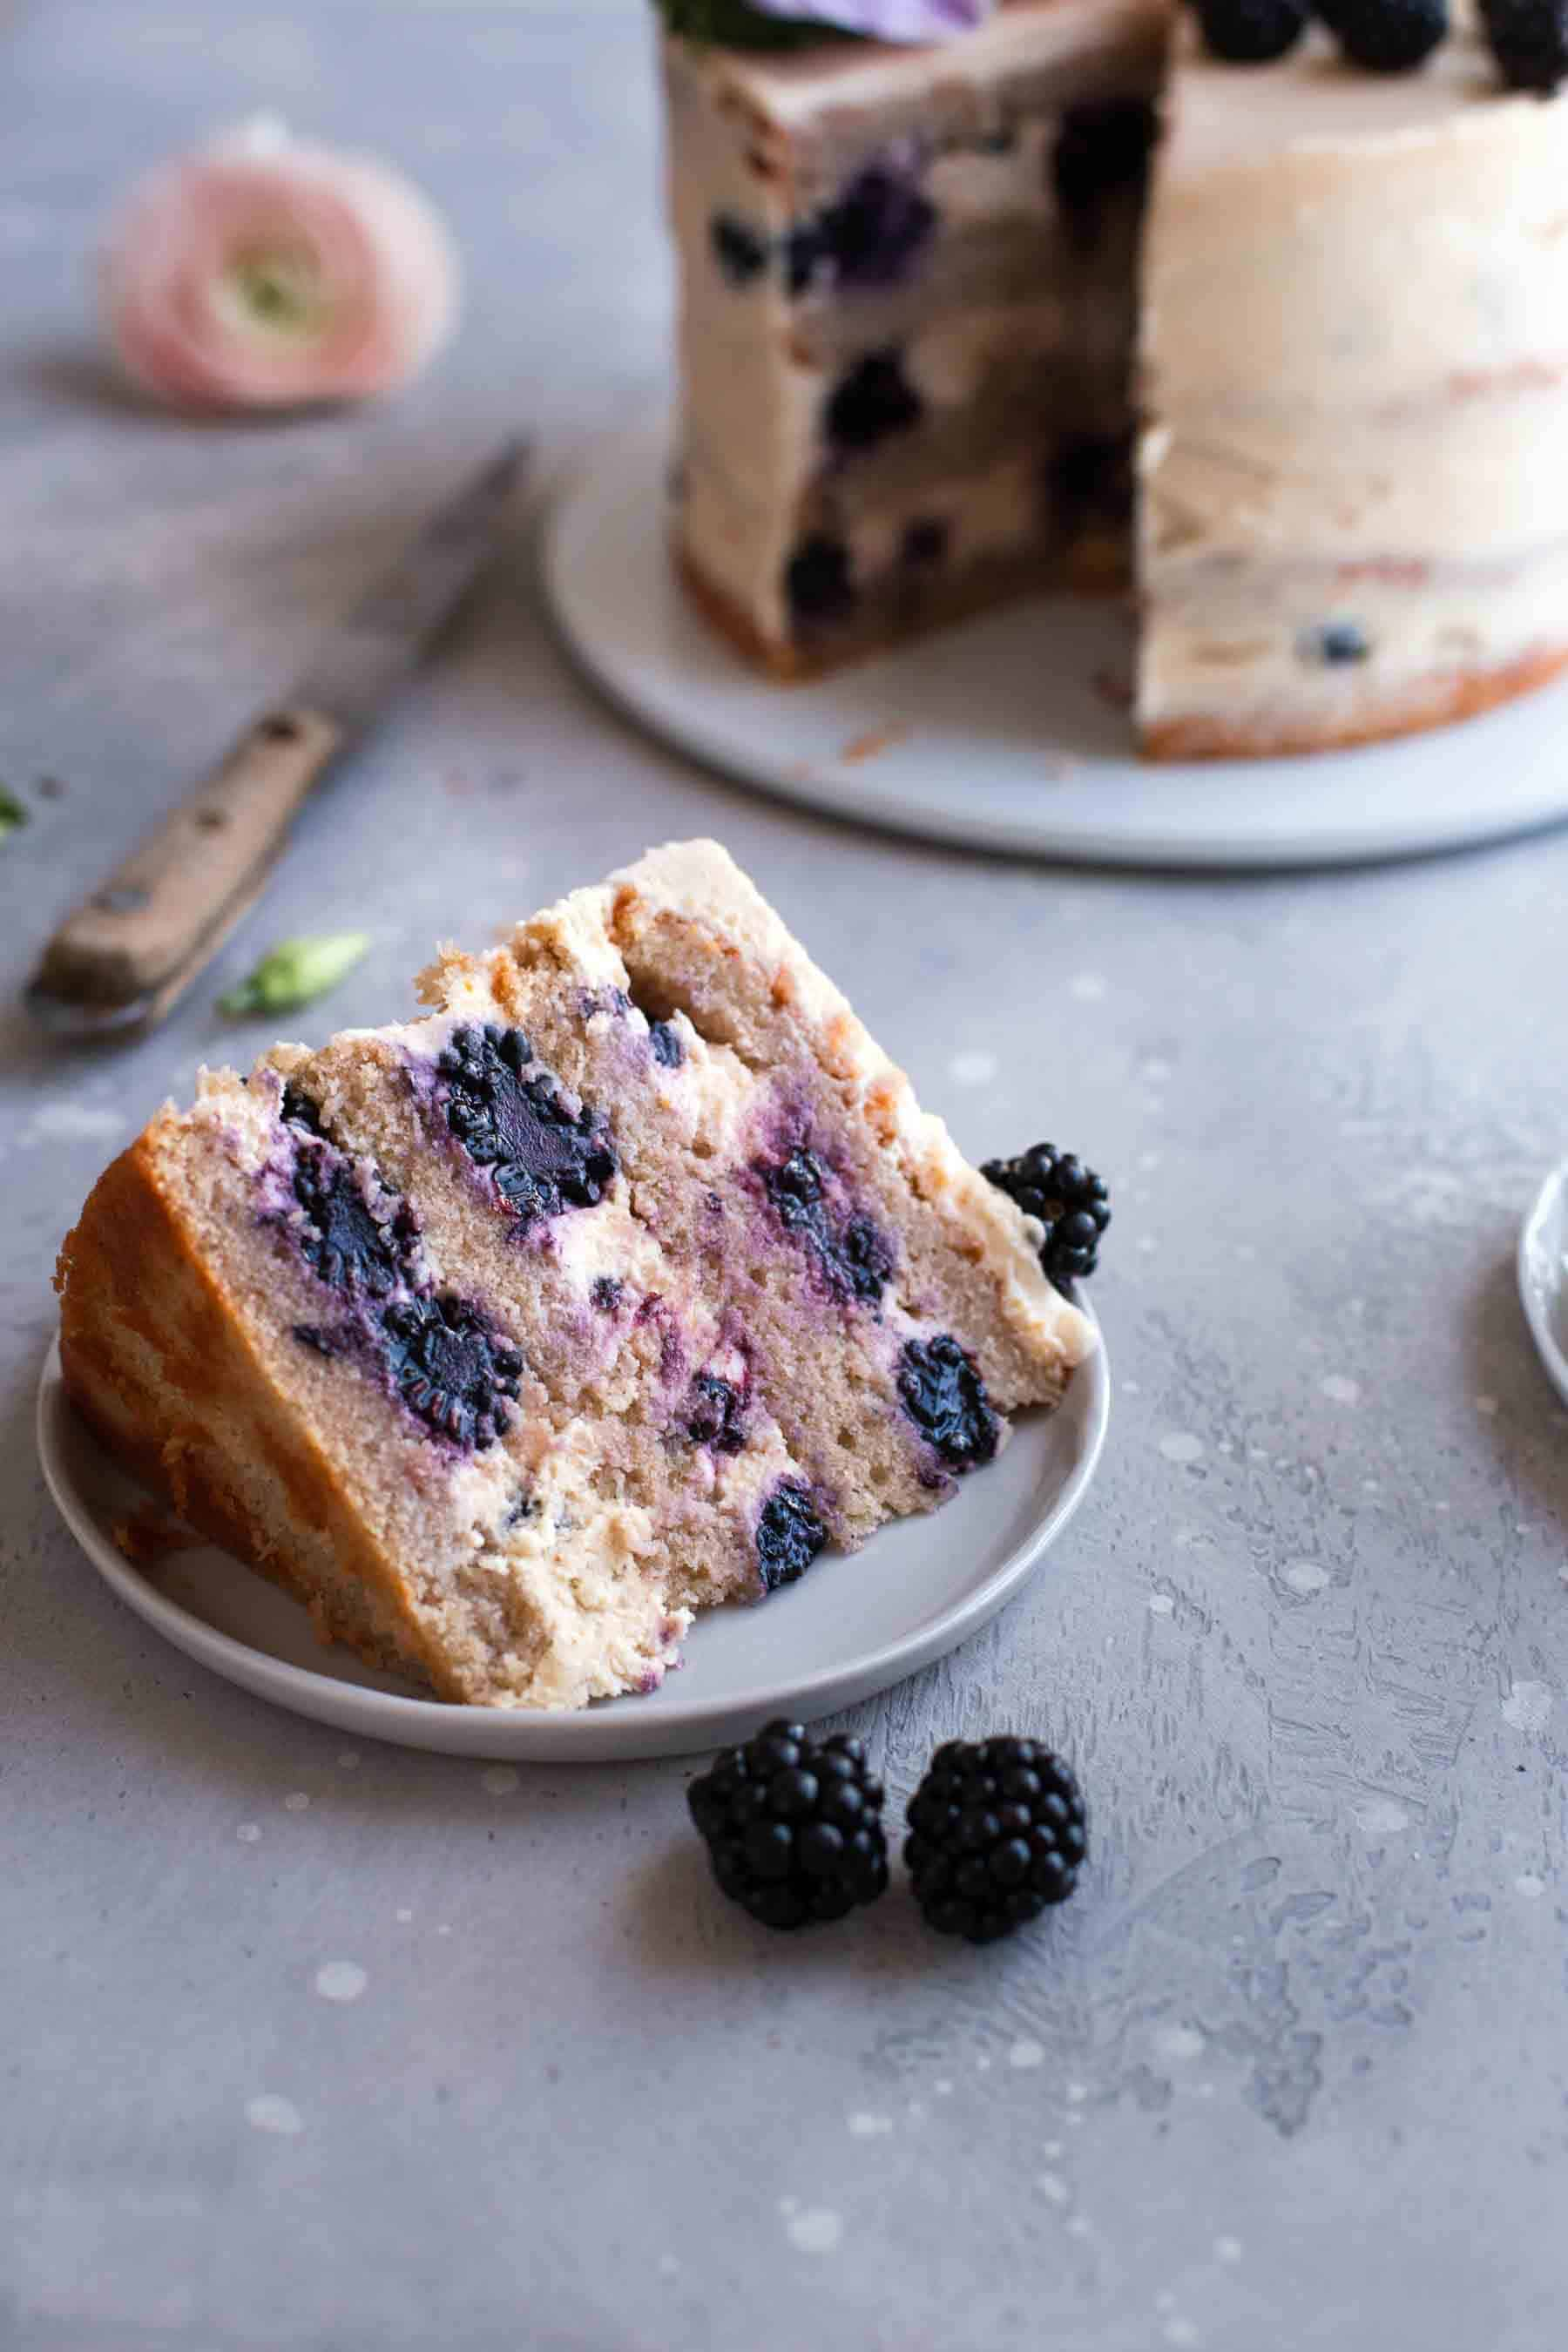 slice of blackberry cake on table